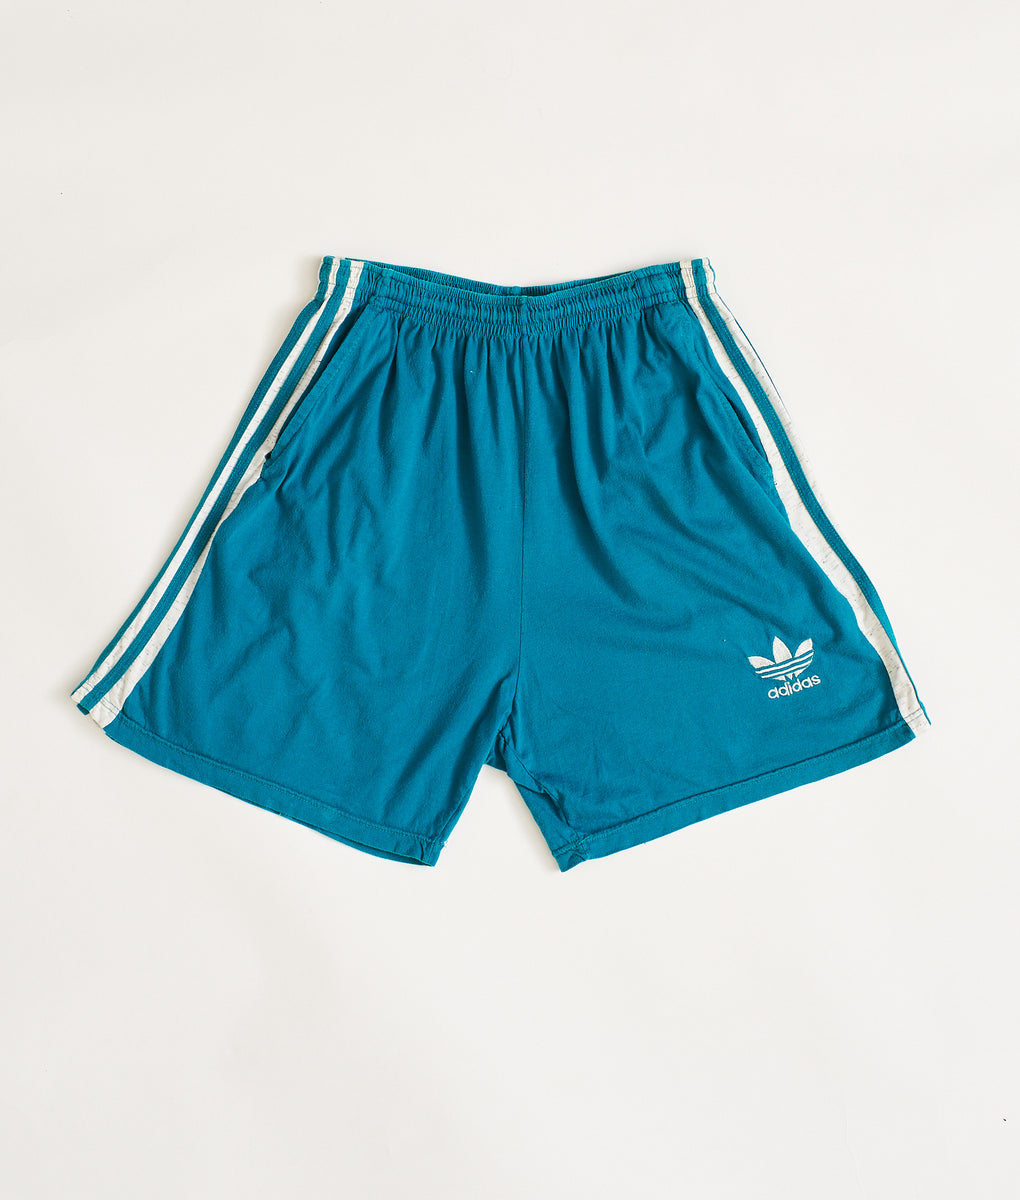 Adidas Sports Shorts (S) - FROTHLYF